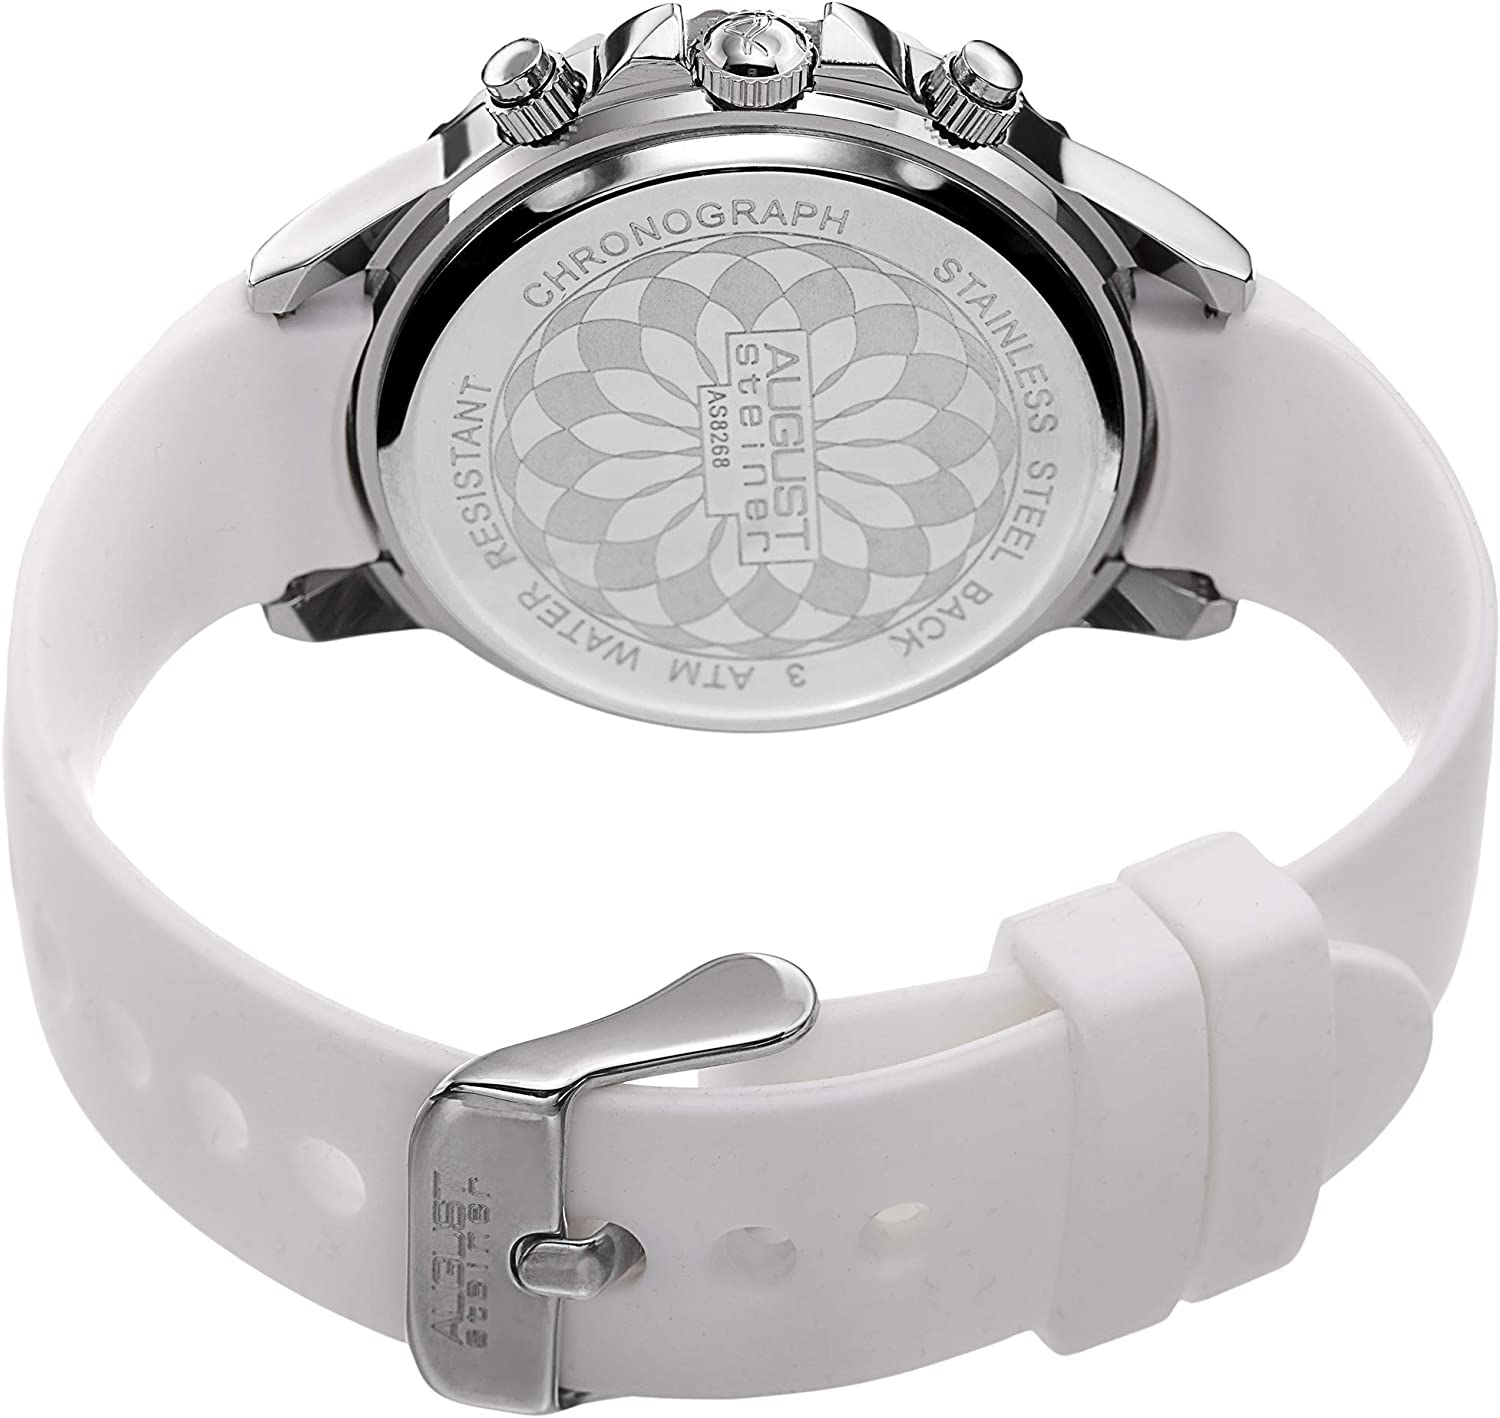 August Steiner AS8268 Women's Leather Watch – Crystal Studded Coin Edge Bezel, Diamond Marker, Mother of Pearl Dial, Multifunction Day, Date, 24 Hour White & Silver